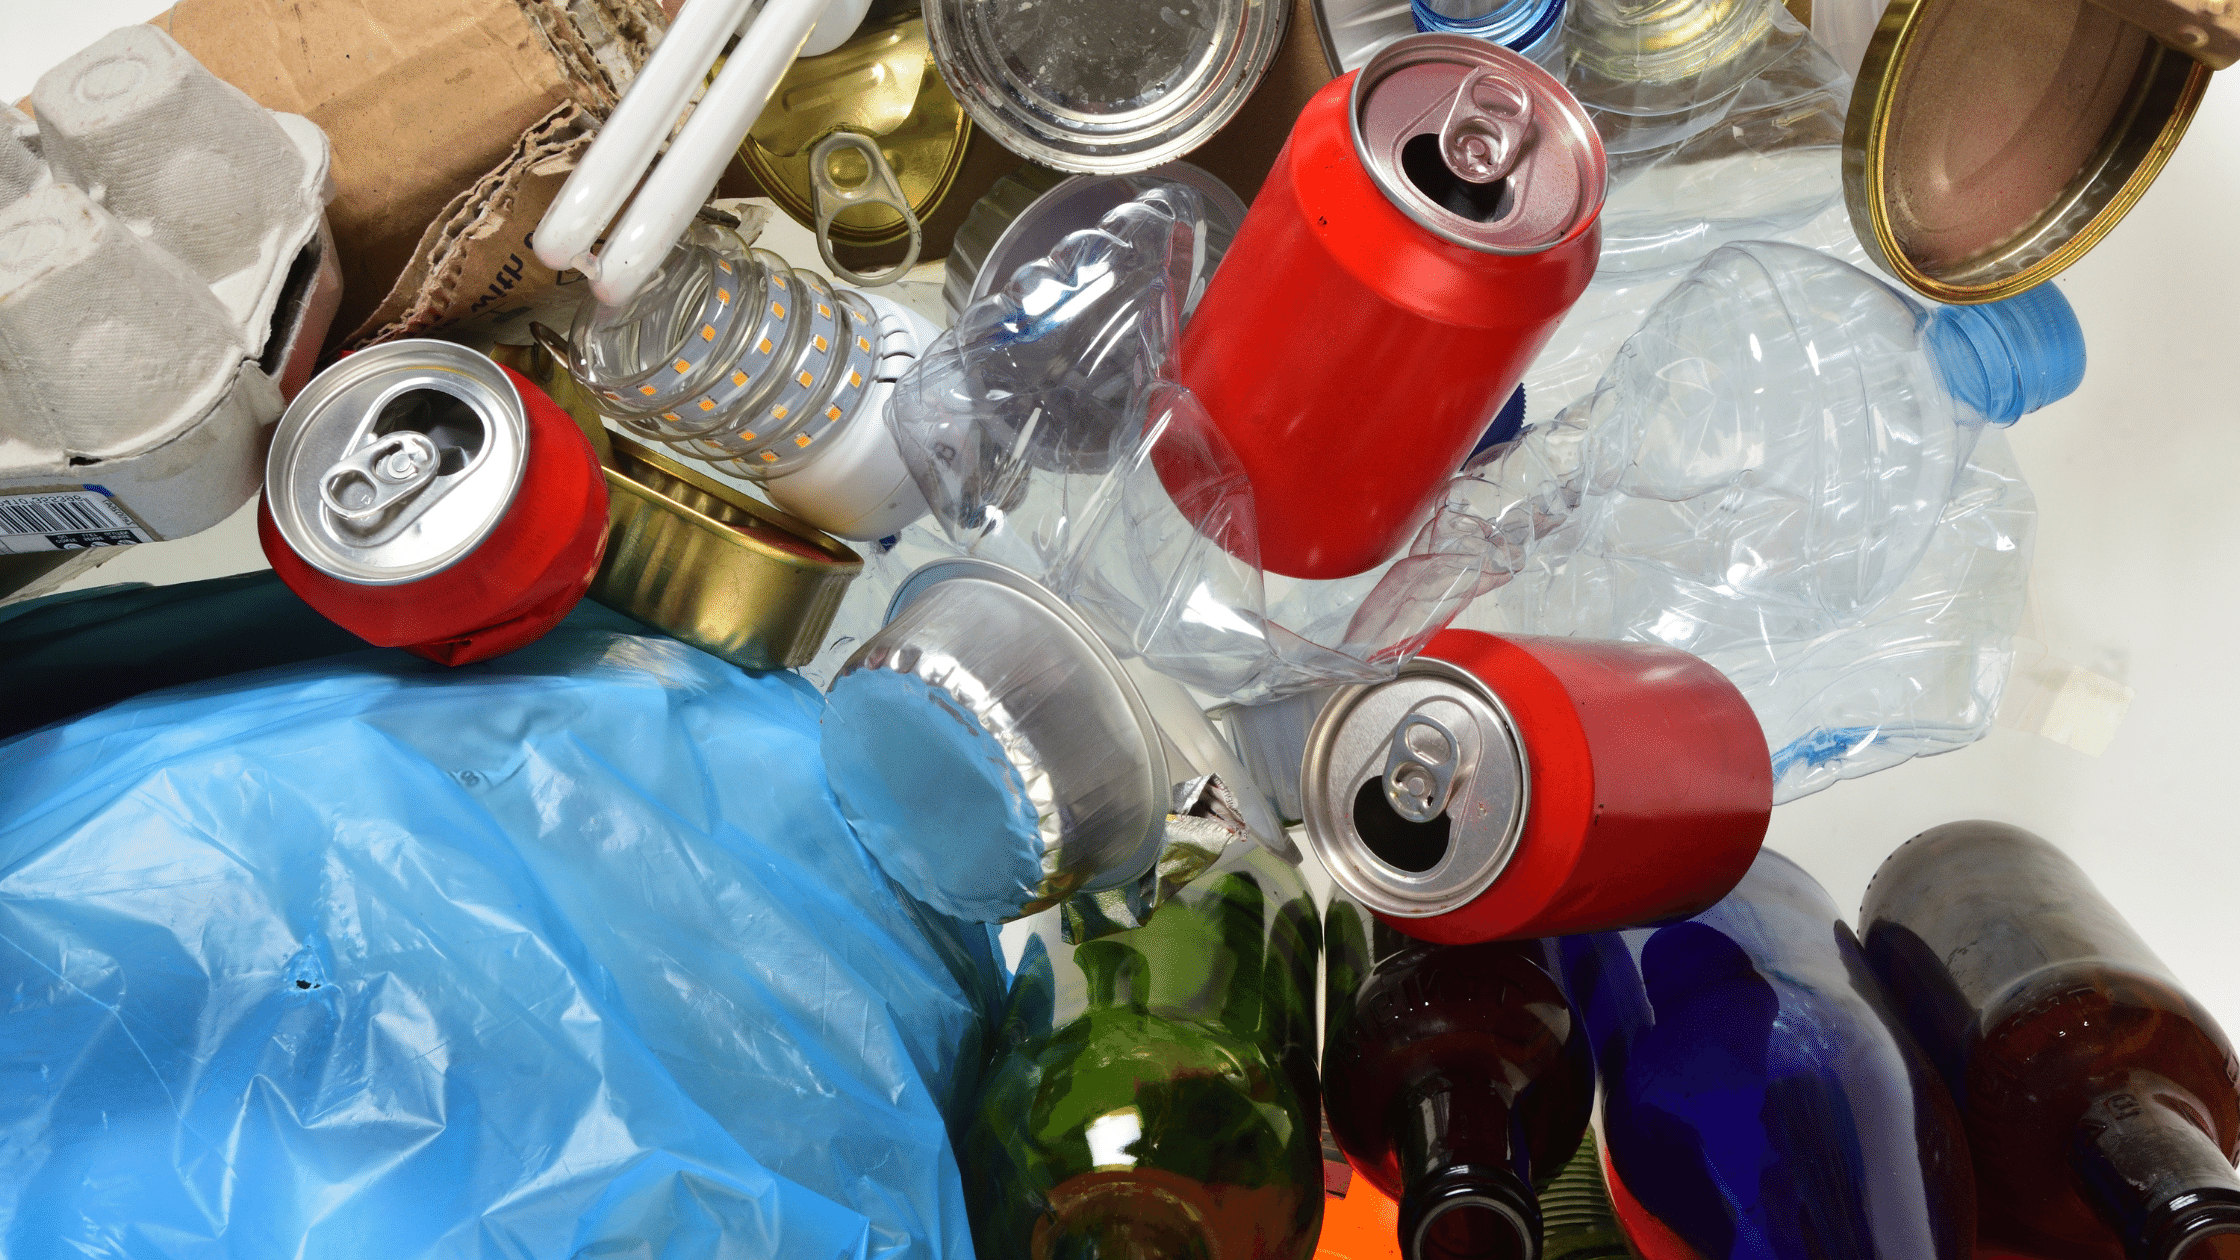 image showing pile of mixed recyclables blue plastic bag, cans, plastic bottles, lightbulb, glass bottles, etc